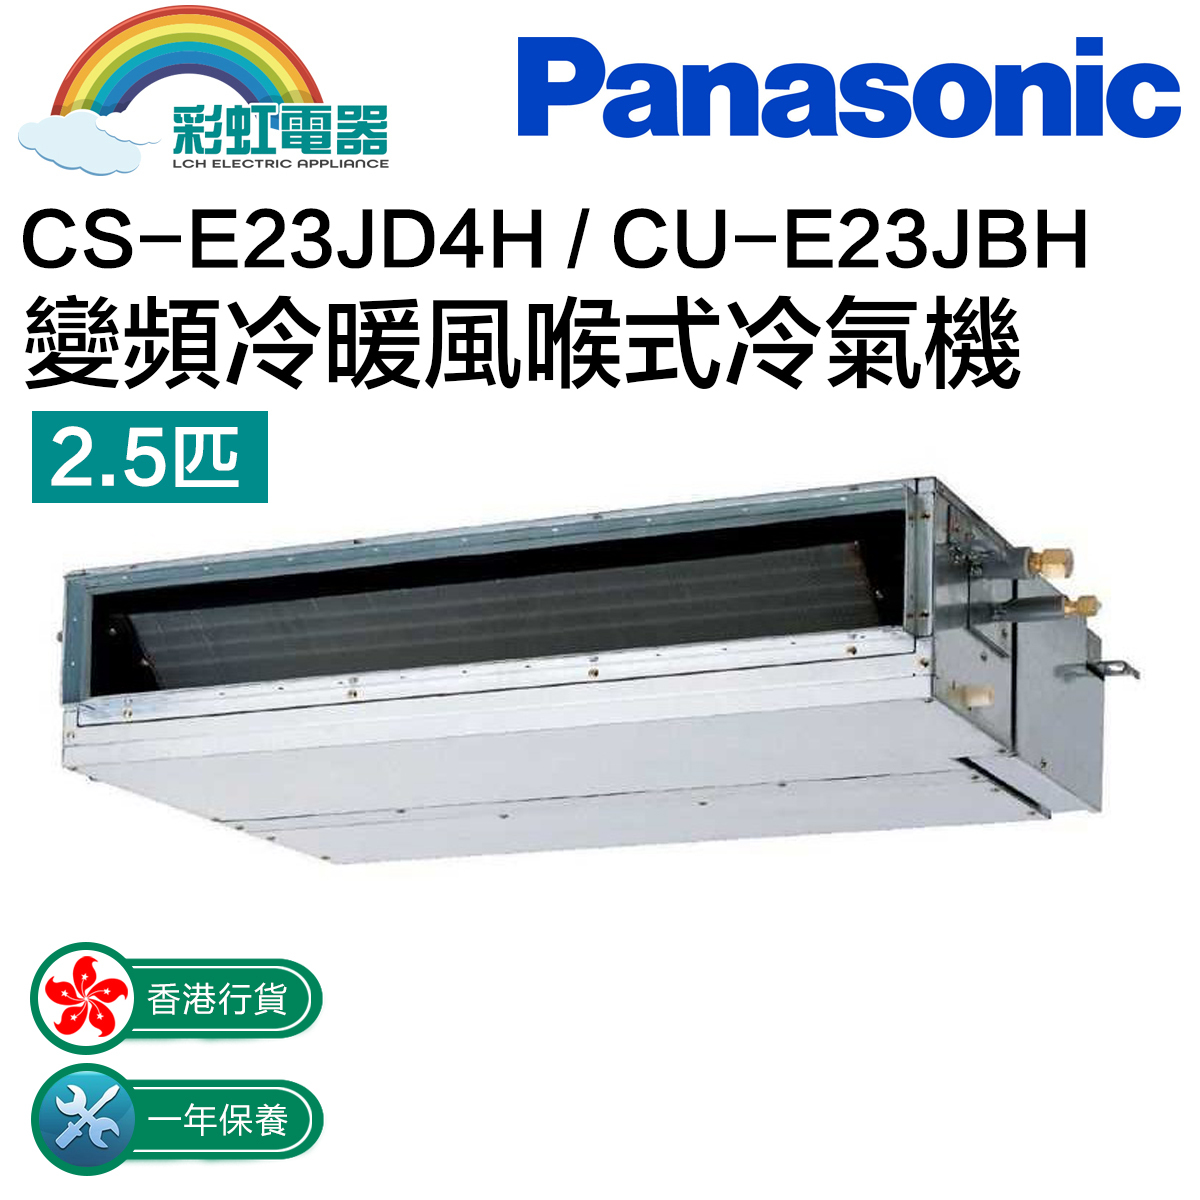 CS-E23JD4H / CU-E23JBH 2.5 variable frequency cold/warm low-pressure air duct air conditioner